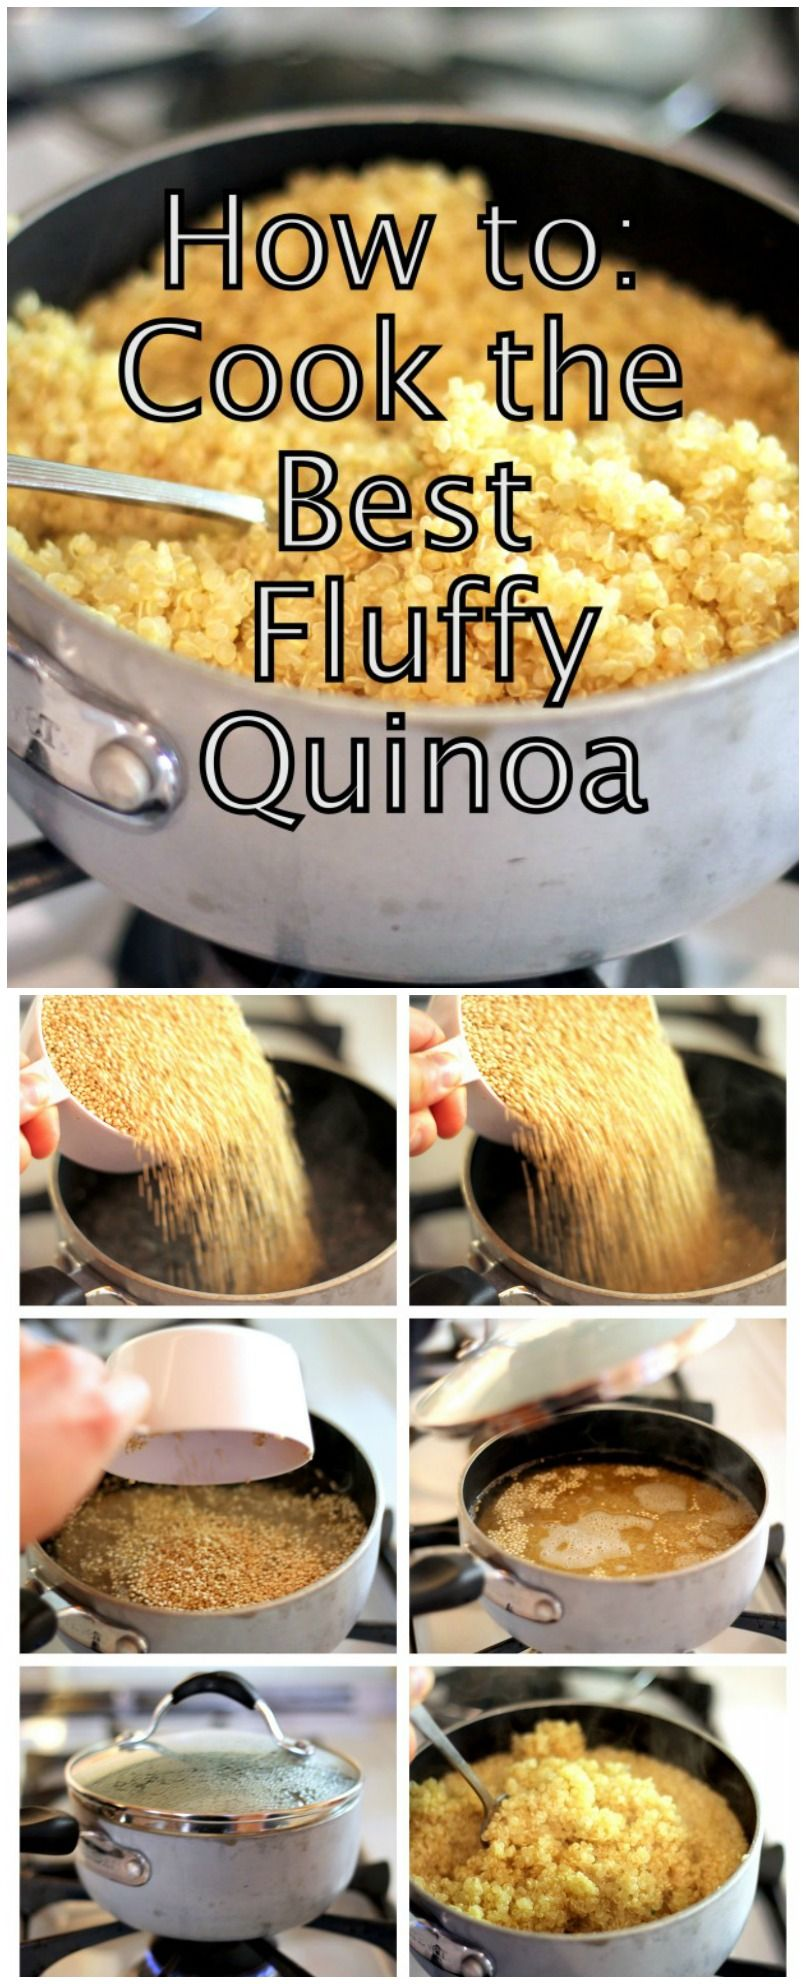 Photo of How to cook the best fluffy quinoa over the stove!